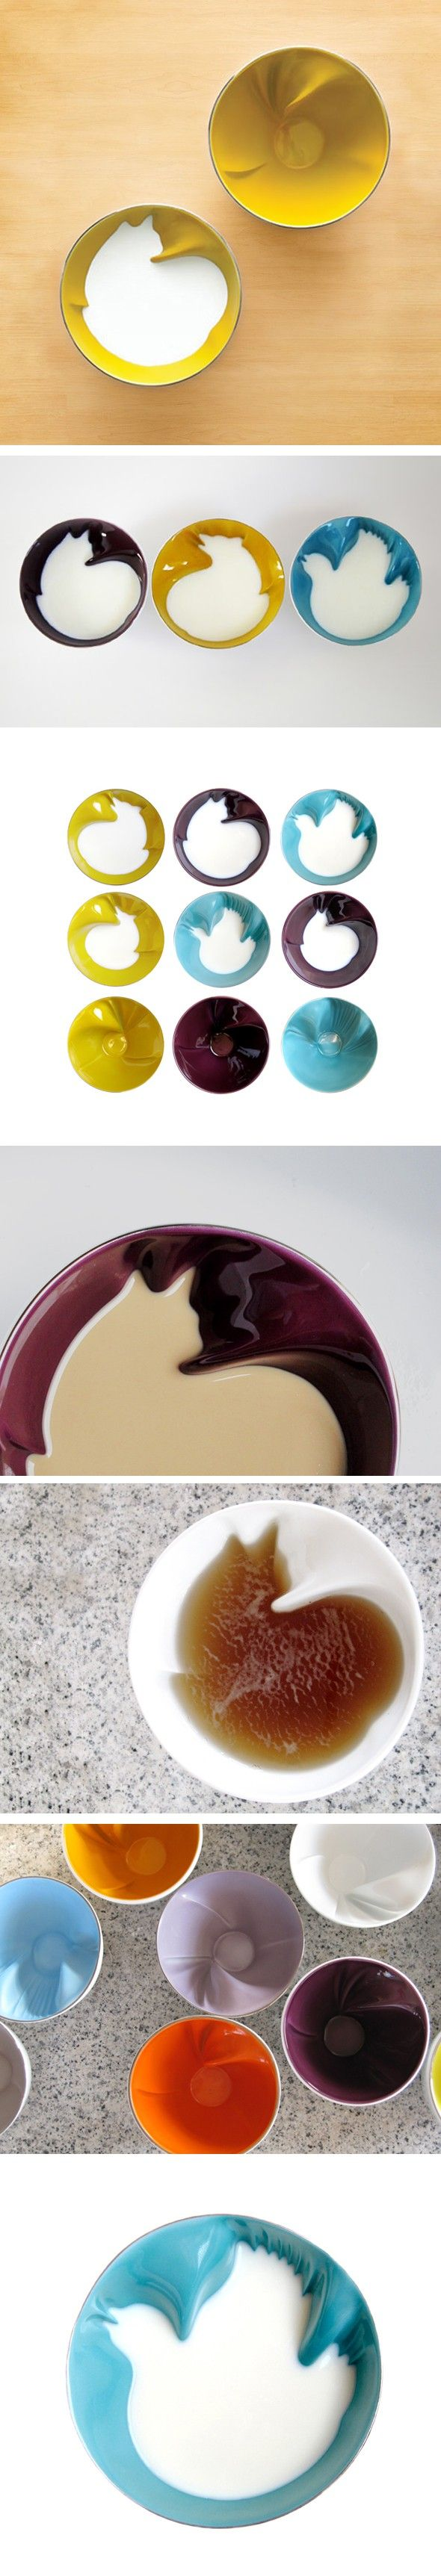 Porcelain bowls designed by Geraldine de Beco for Bernardaud in France. When the bowls are filled with a liquid, the image of an animal is formed (cat, dove, wolf). These are bowls, but I would love a mug like this!